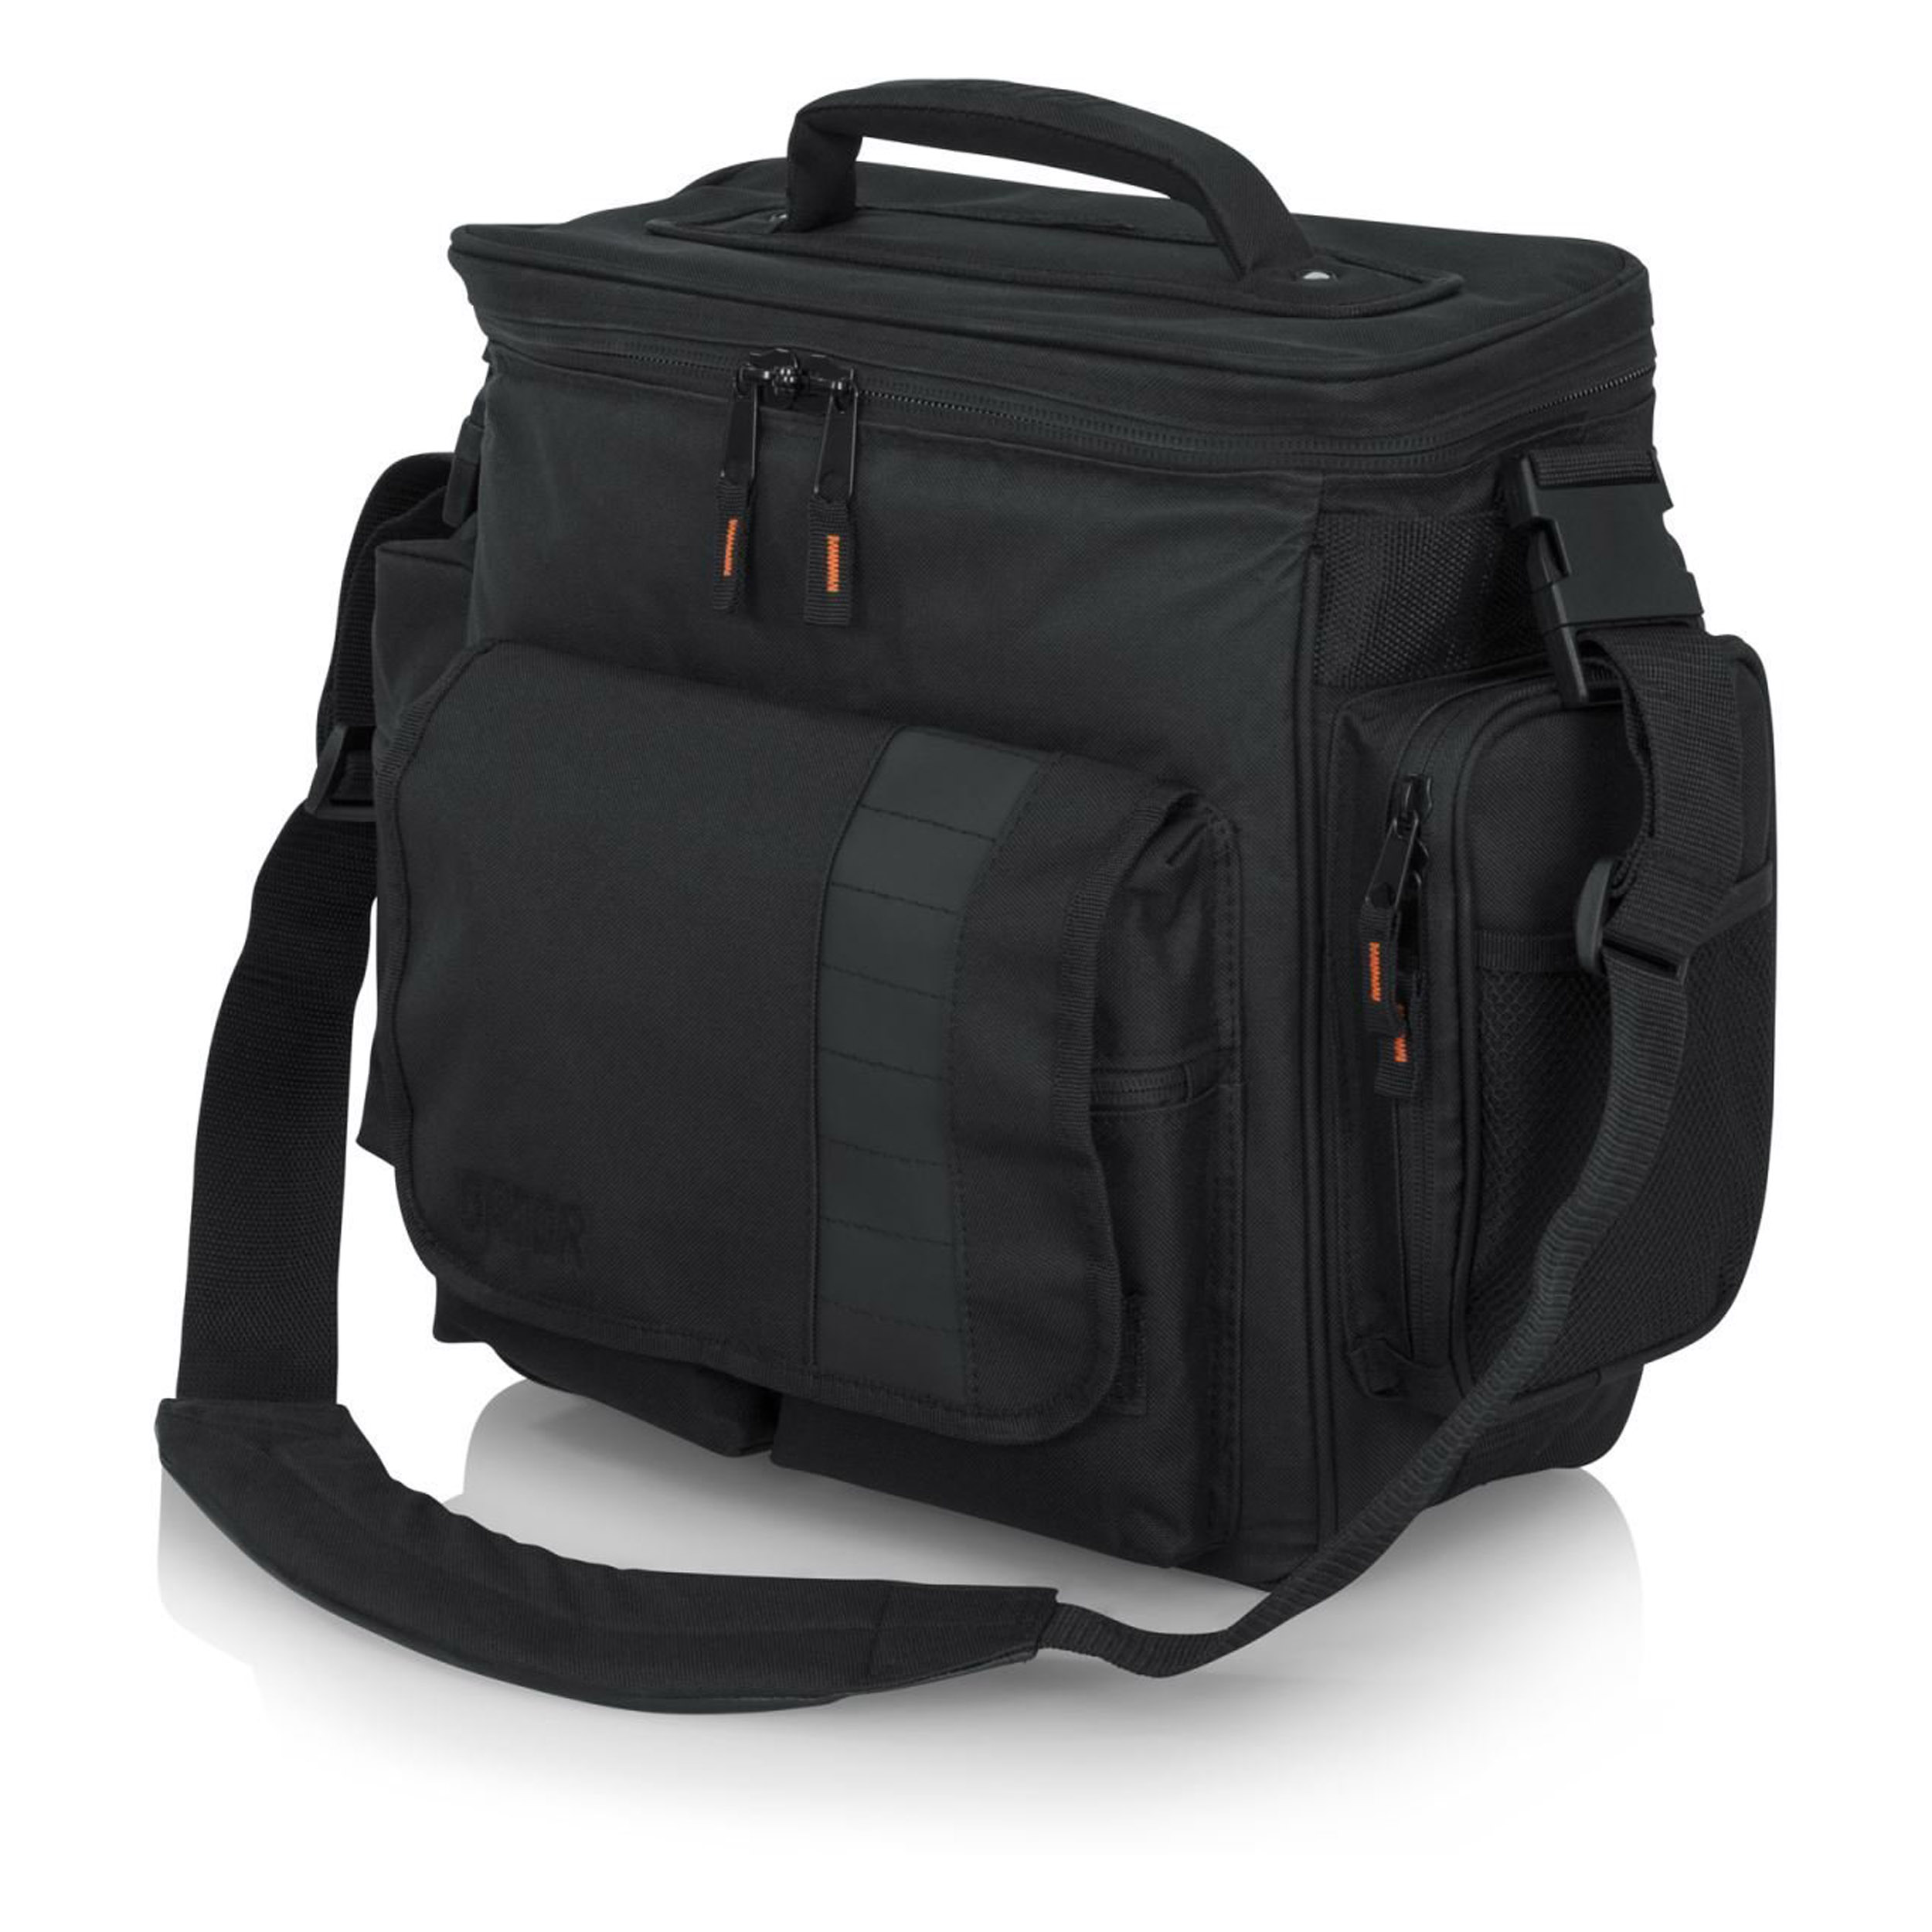 Gator G-CLUB-DJ BAG DJ Bag for 35 LPs and Serato Style Interface by Gator